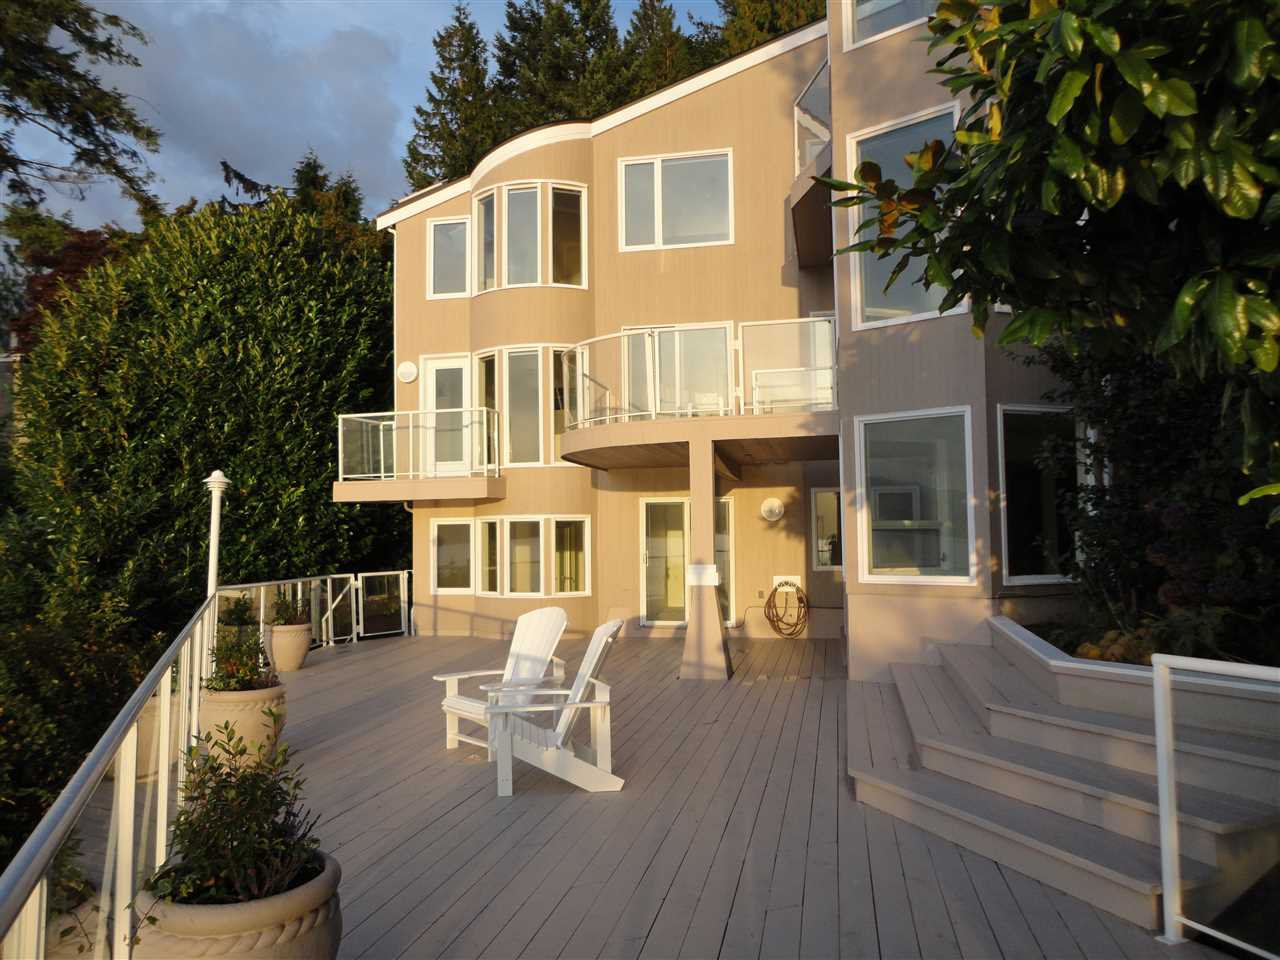 Photo 3: Photos: 8255 PASCO ROAD in West Vancouver: Howe Sound House for sale : MLS®# R2351856